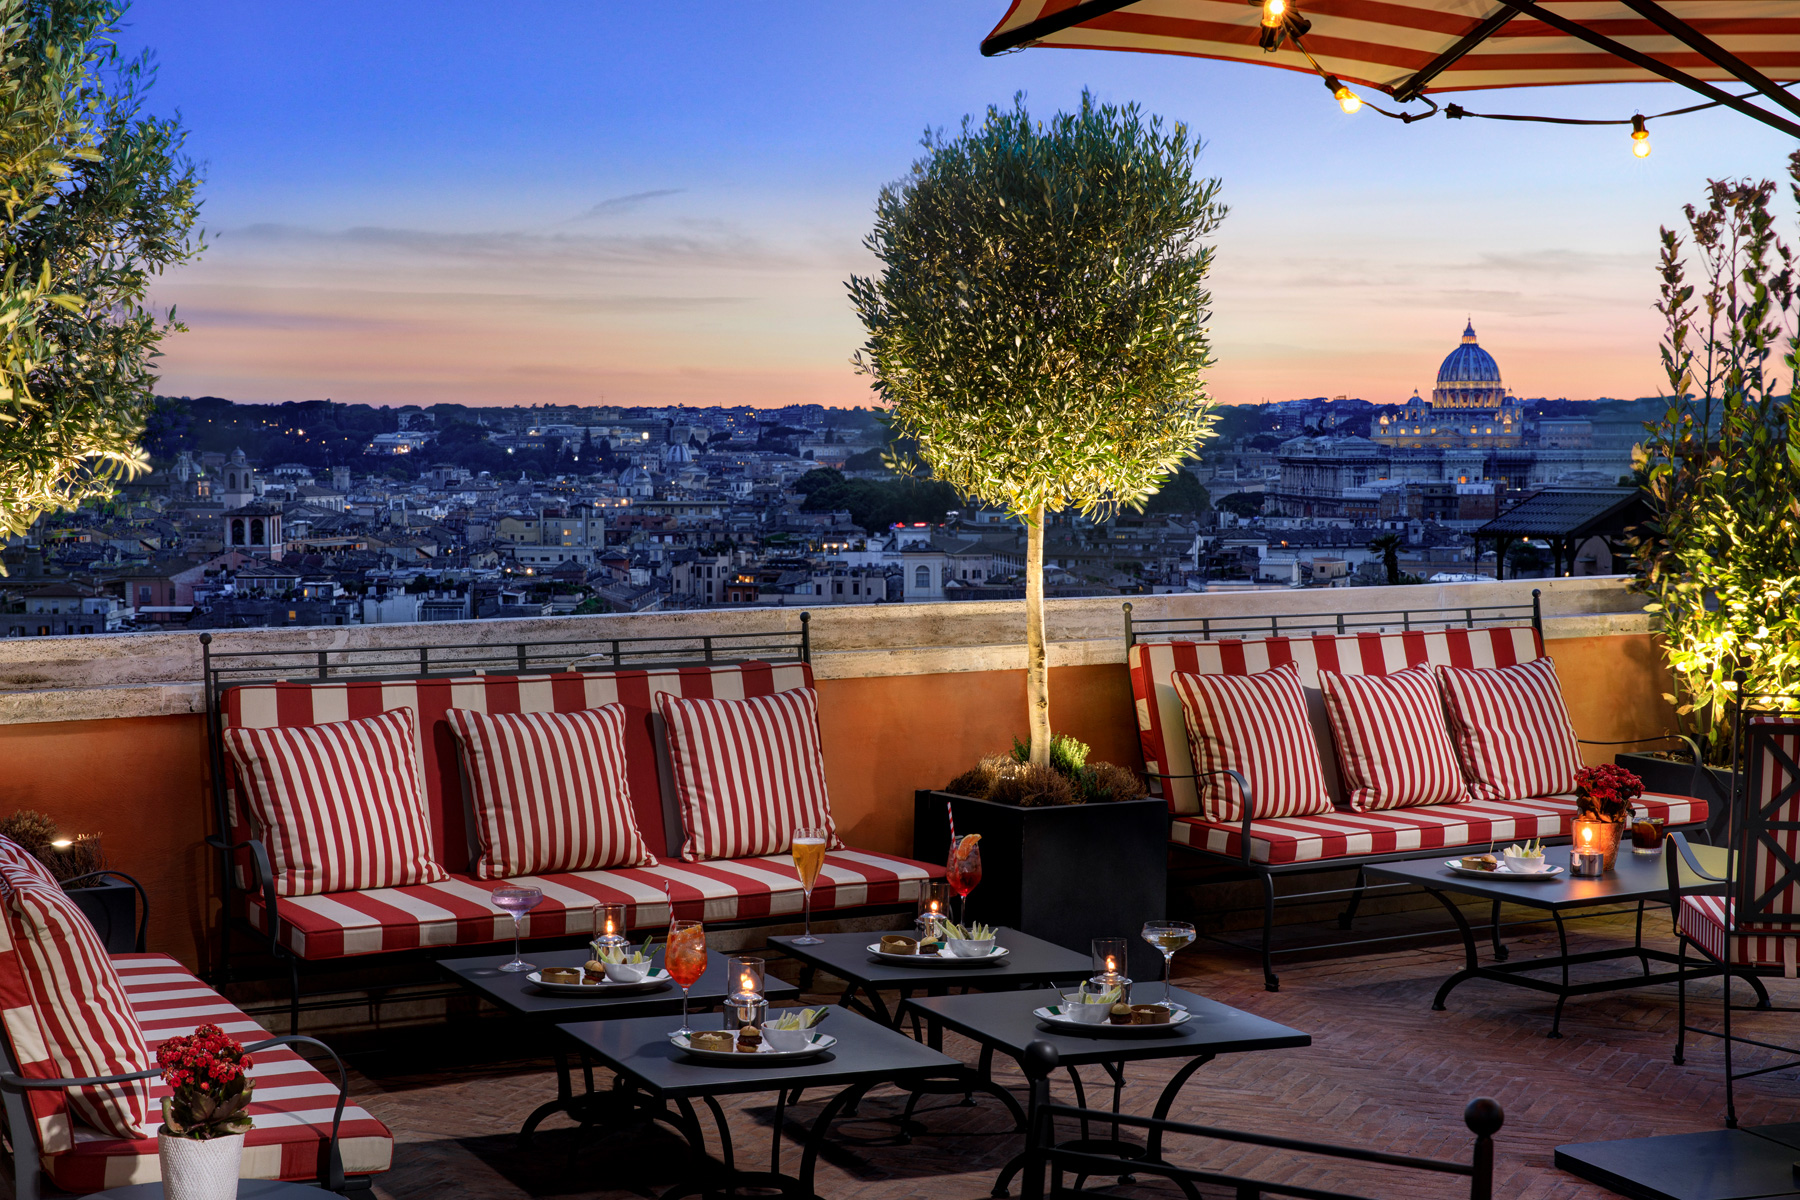 Luxury hotels in Rome